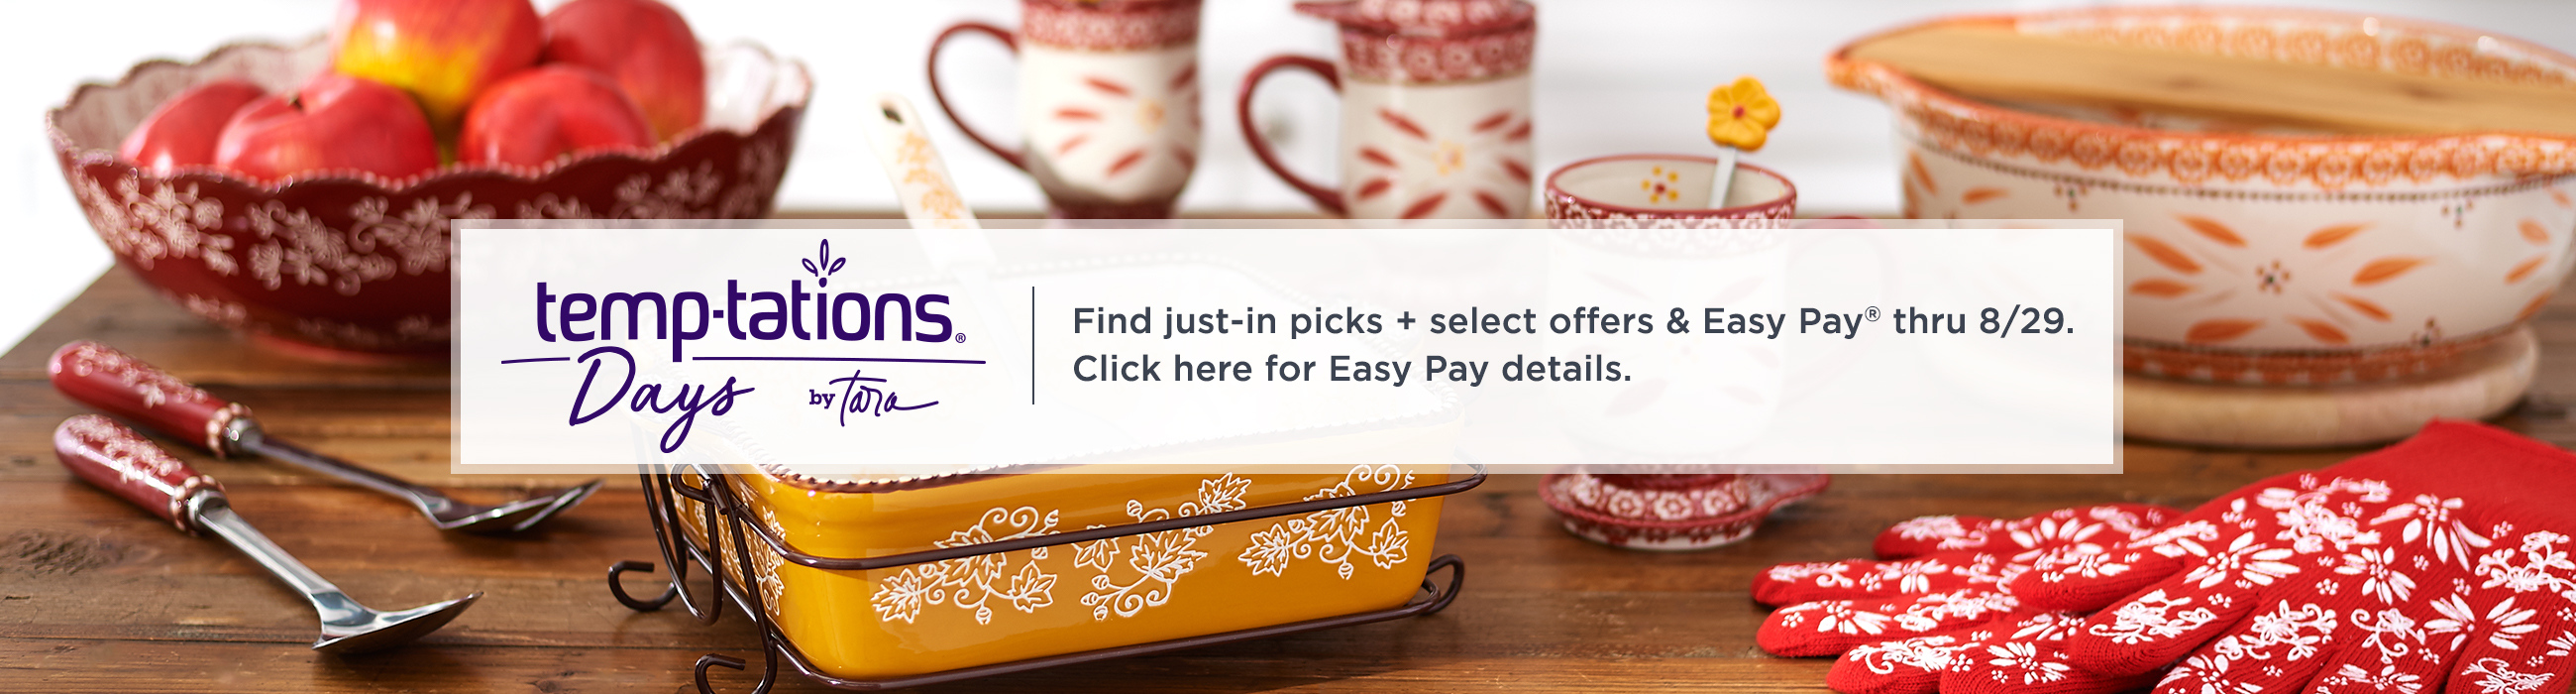 Temp-tations® Days.  Find just-in picks + select offers & Easy Pay® thru 8/29.  Click here for Easy Pay details.